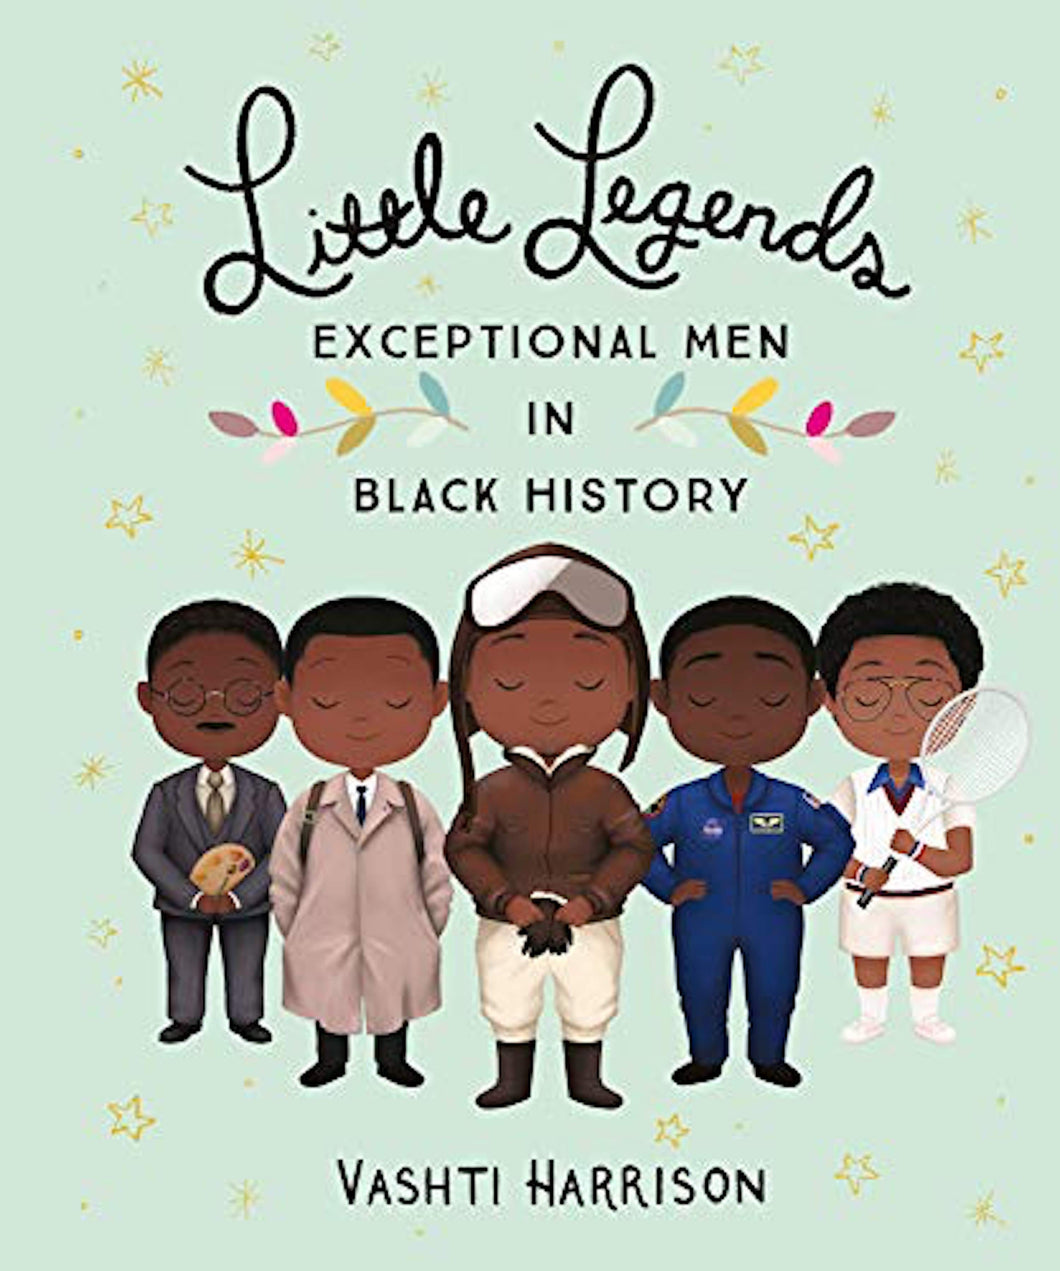 Little Legends: Exceptional Men in Black History by Vashti Harrison